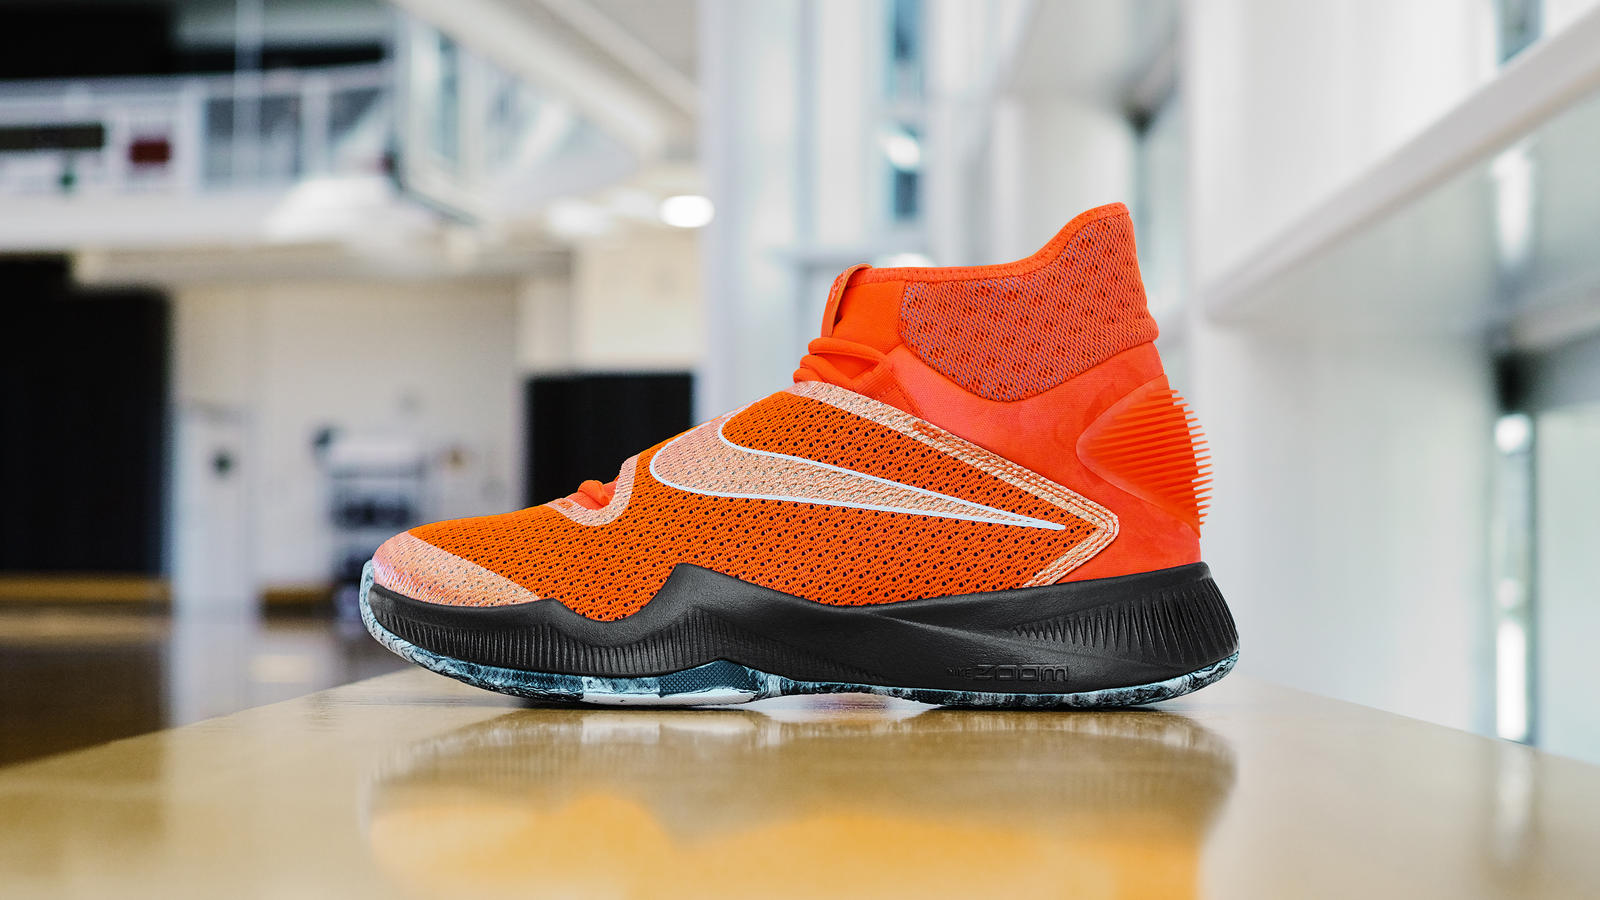 release date: a3d3e 96ffc czech nike zoom hyperrev kyrie irving cleveland cavaliers team orange  multicolor s8q6739 e7f50 eaa9a  new style skylar diggins hyperrev 5 hd 1600  7daa1 ...